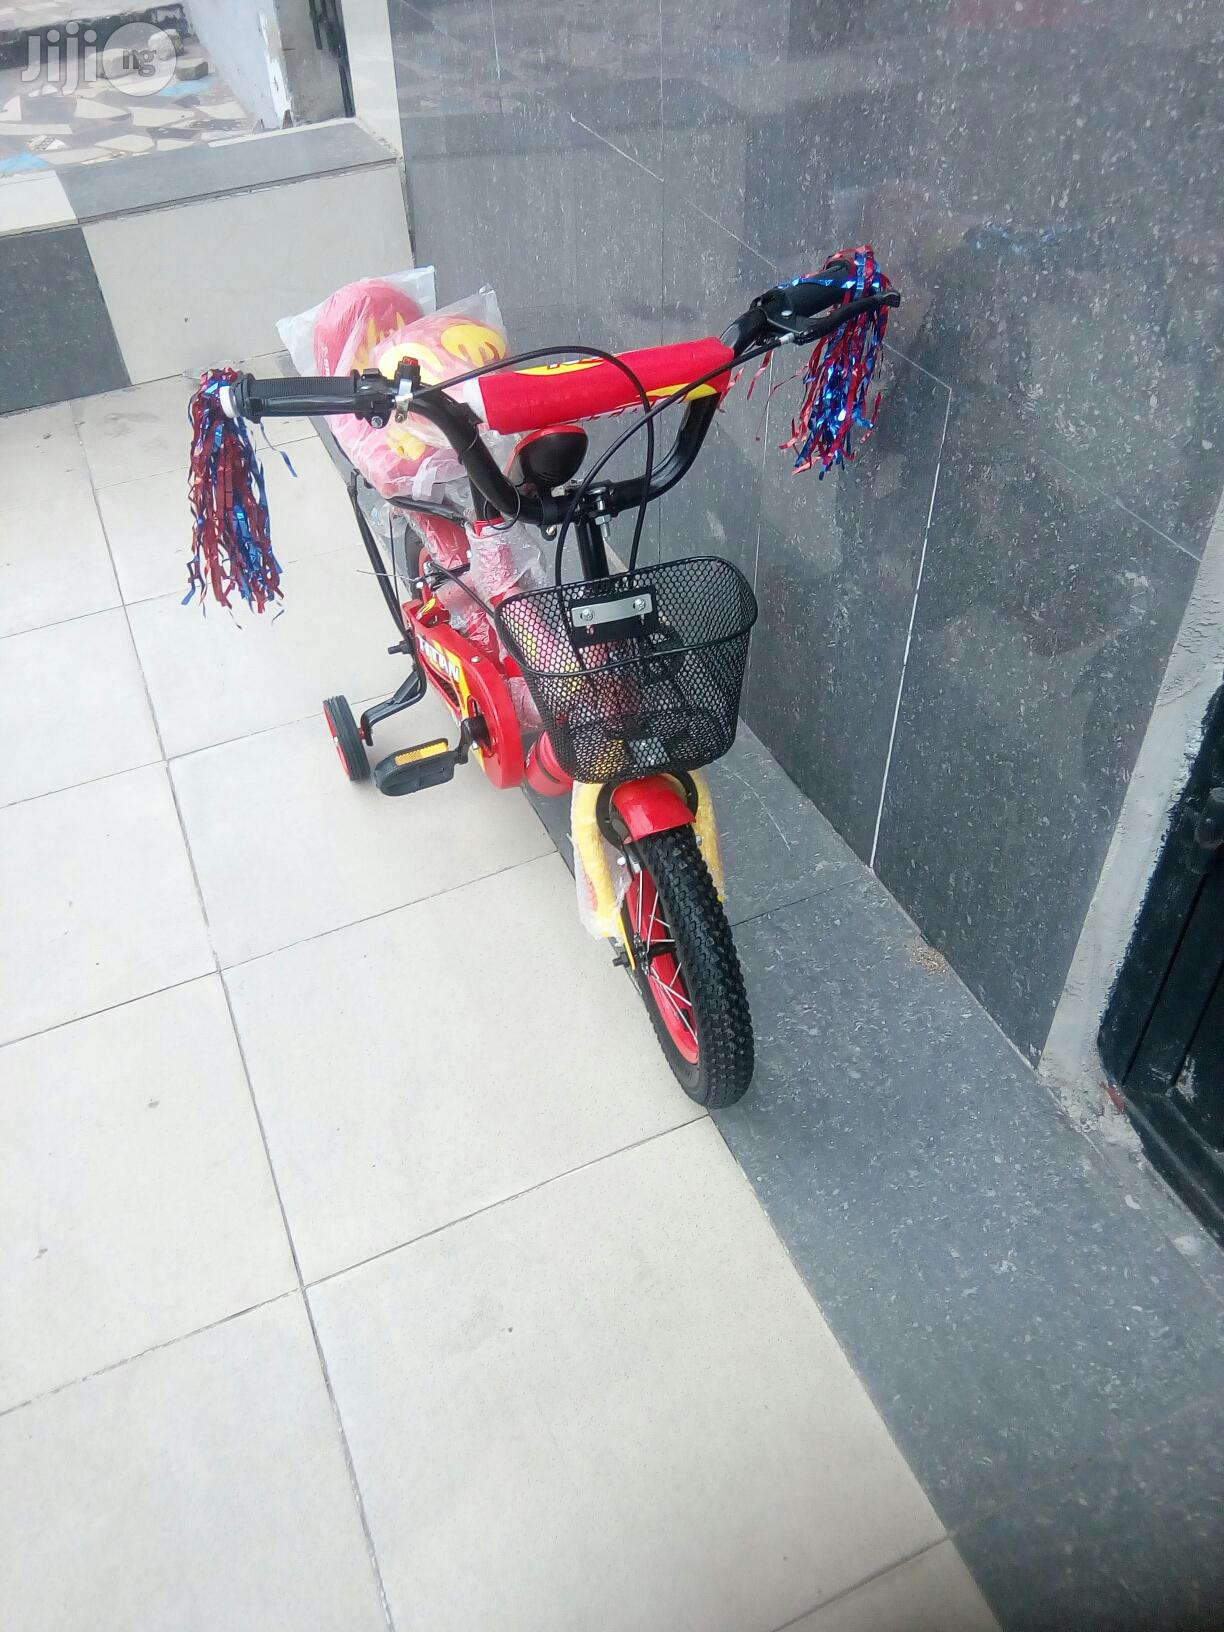 Children Bicycle S 12 Inches | Toys for sale in Port-Harcourt, Rivers State, Nigeria